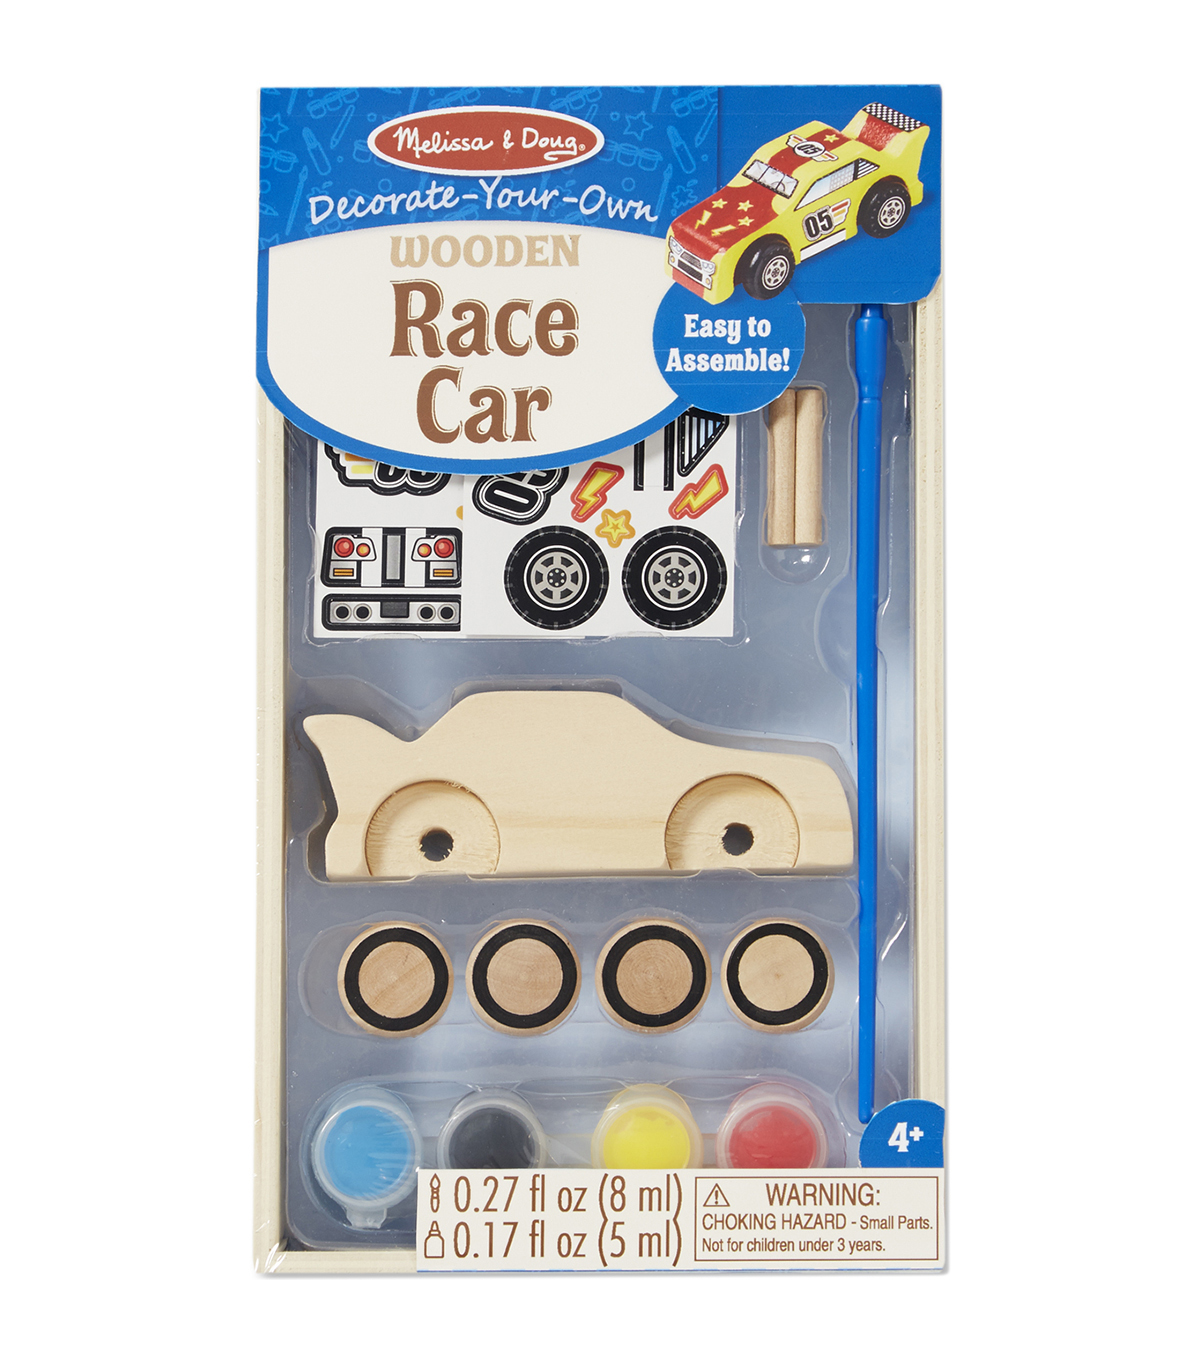 Melissa & Doug Decorate-Your-Own Wooden Kit-Race Car